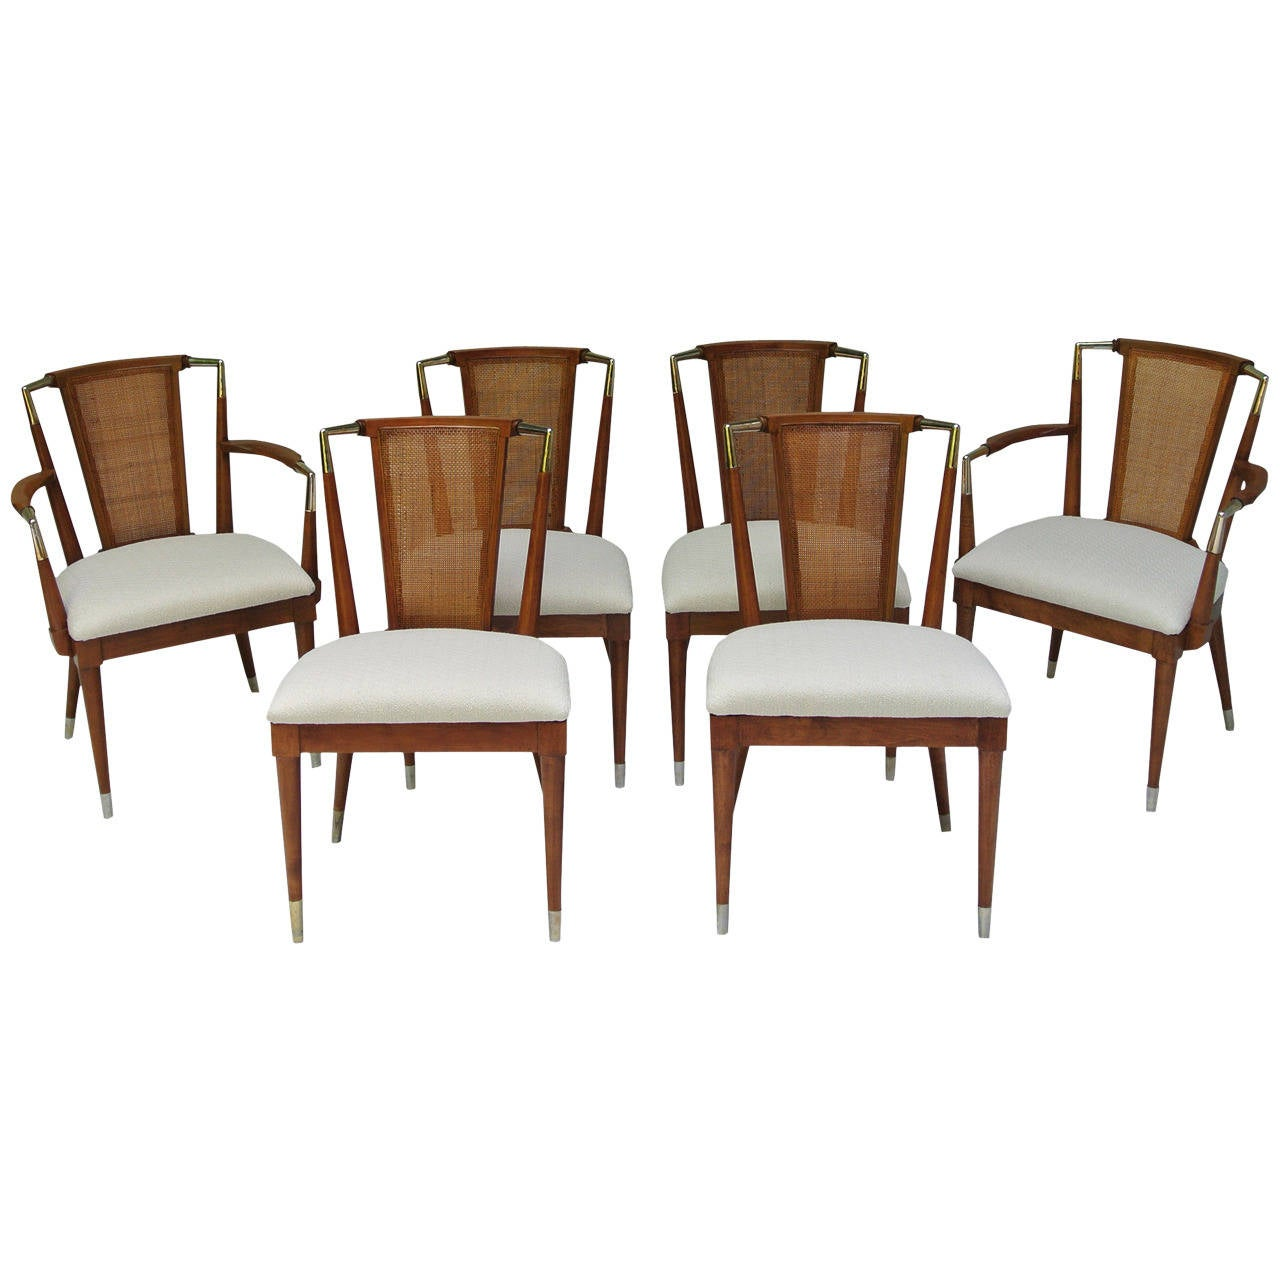 Bert England Forward Trend Six Cane and Brass Dining Chairs Johnson Co. 1950s